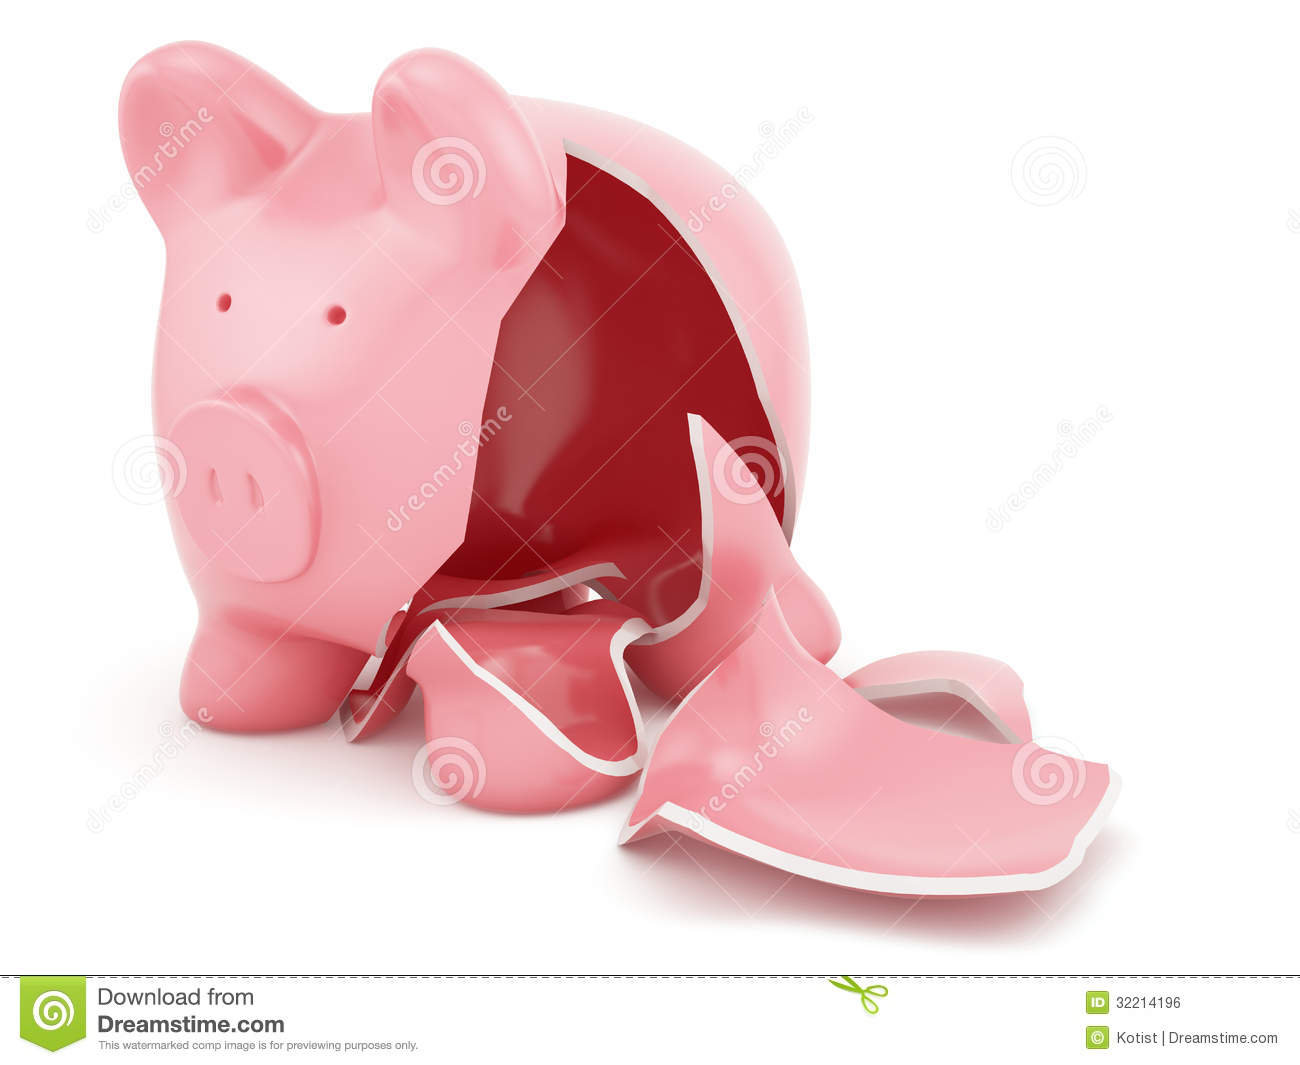 Broken piggy bank clipart father clipart stock Broken piggy bank clipart - ClipartFox clipart stock